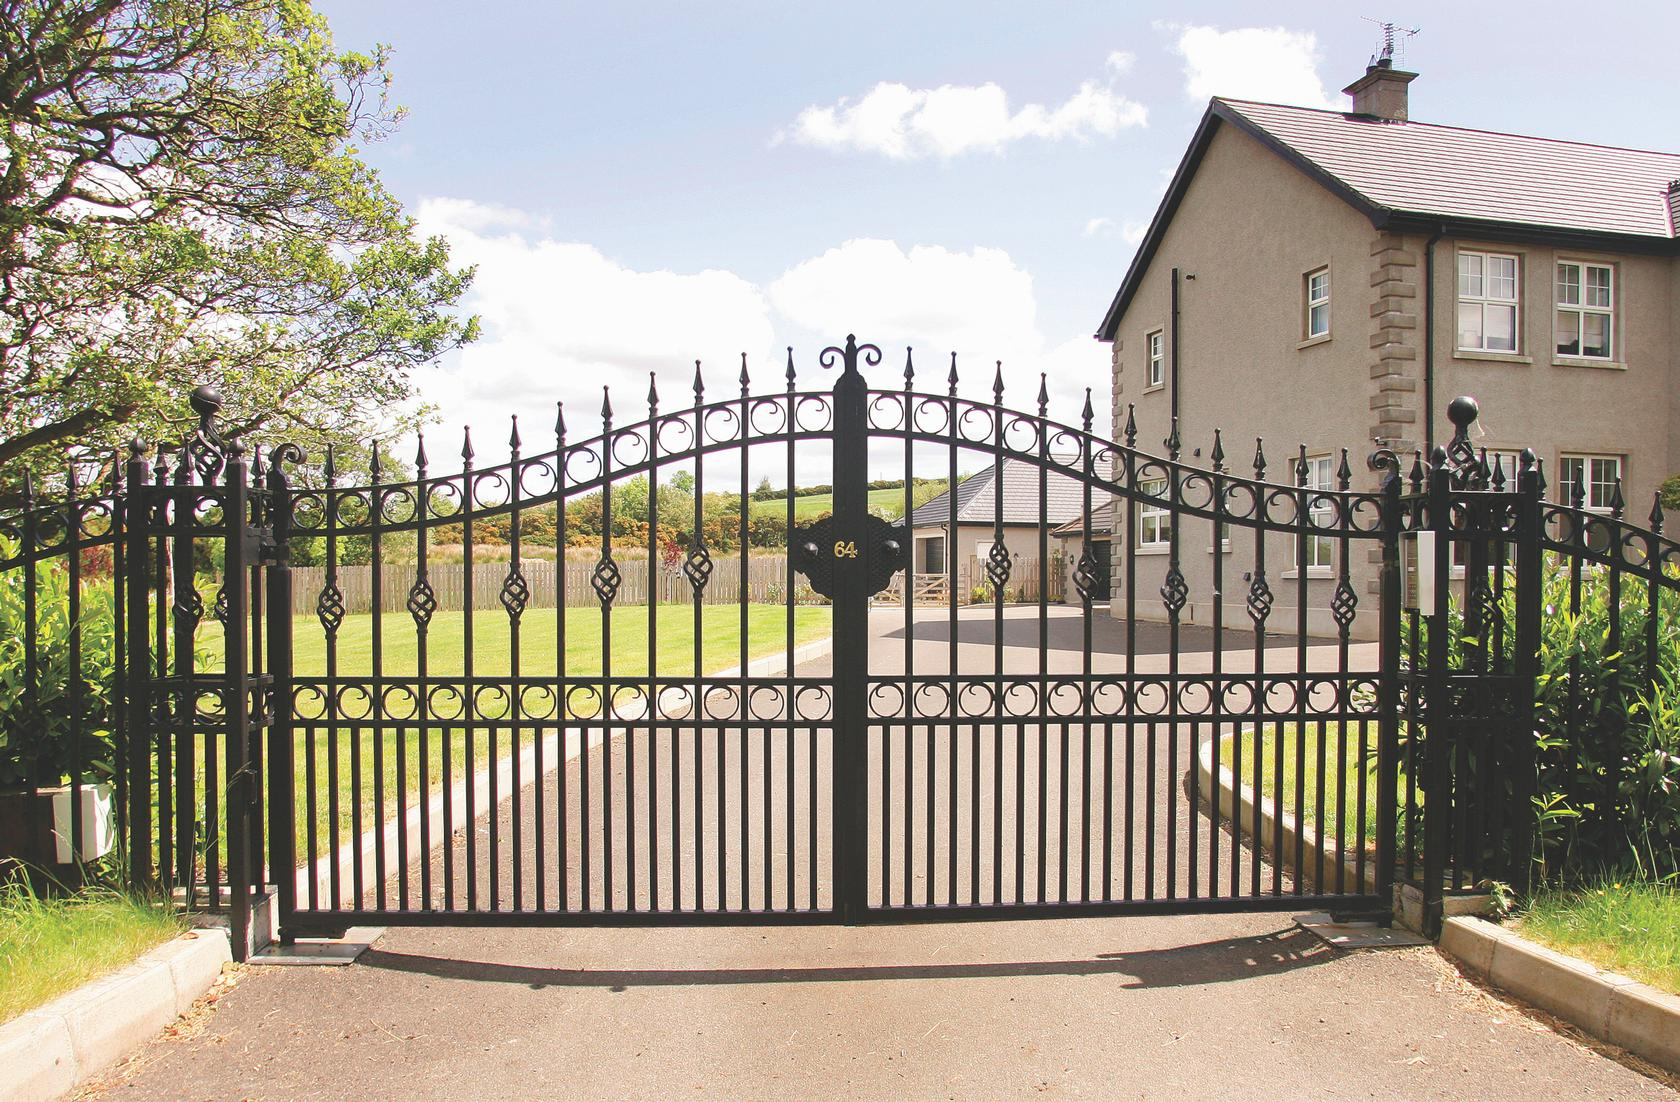 Bespoke Iron Pillars Complimenting The Driveway Entrance